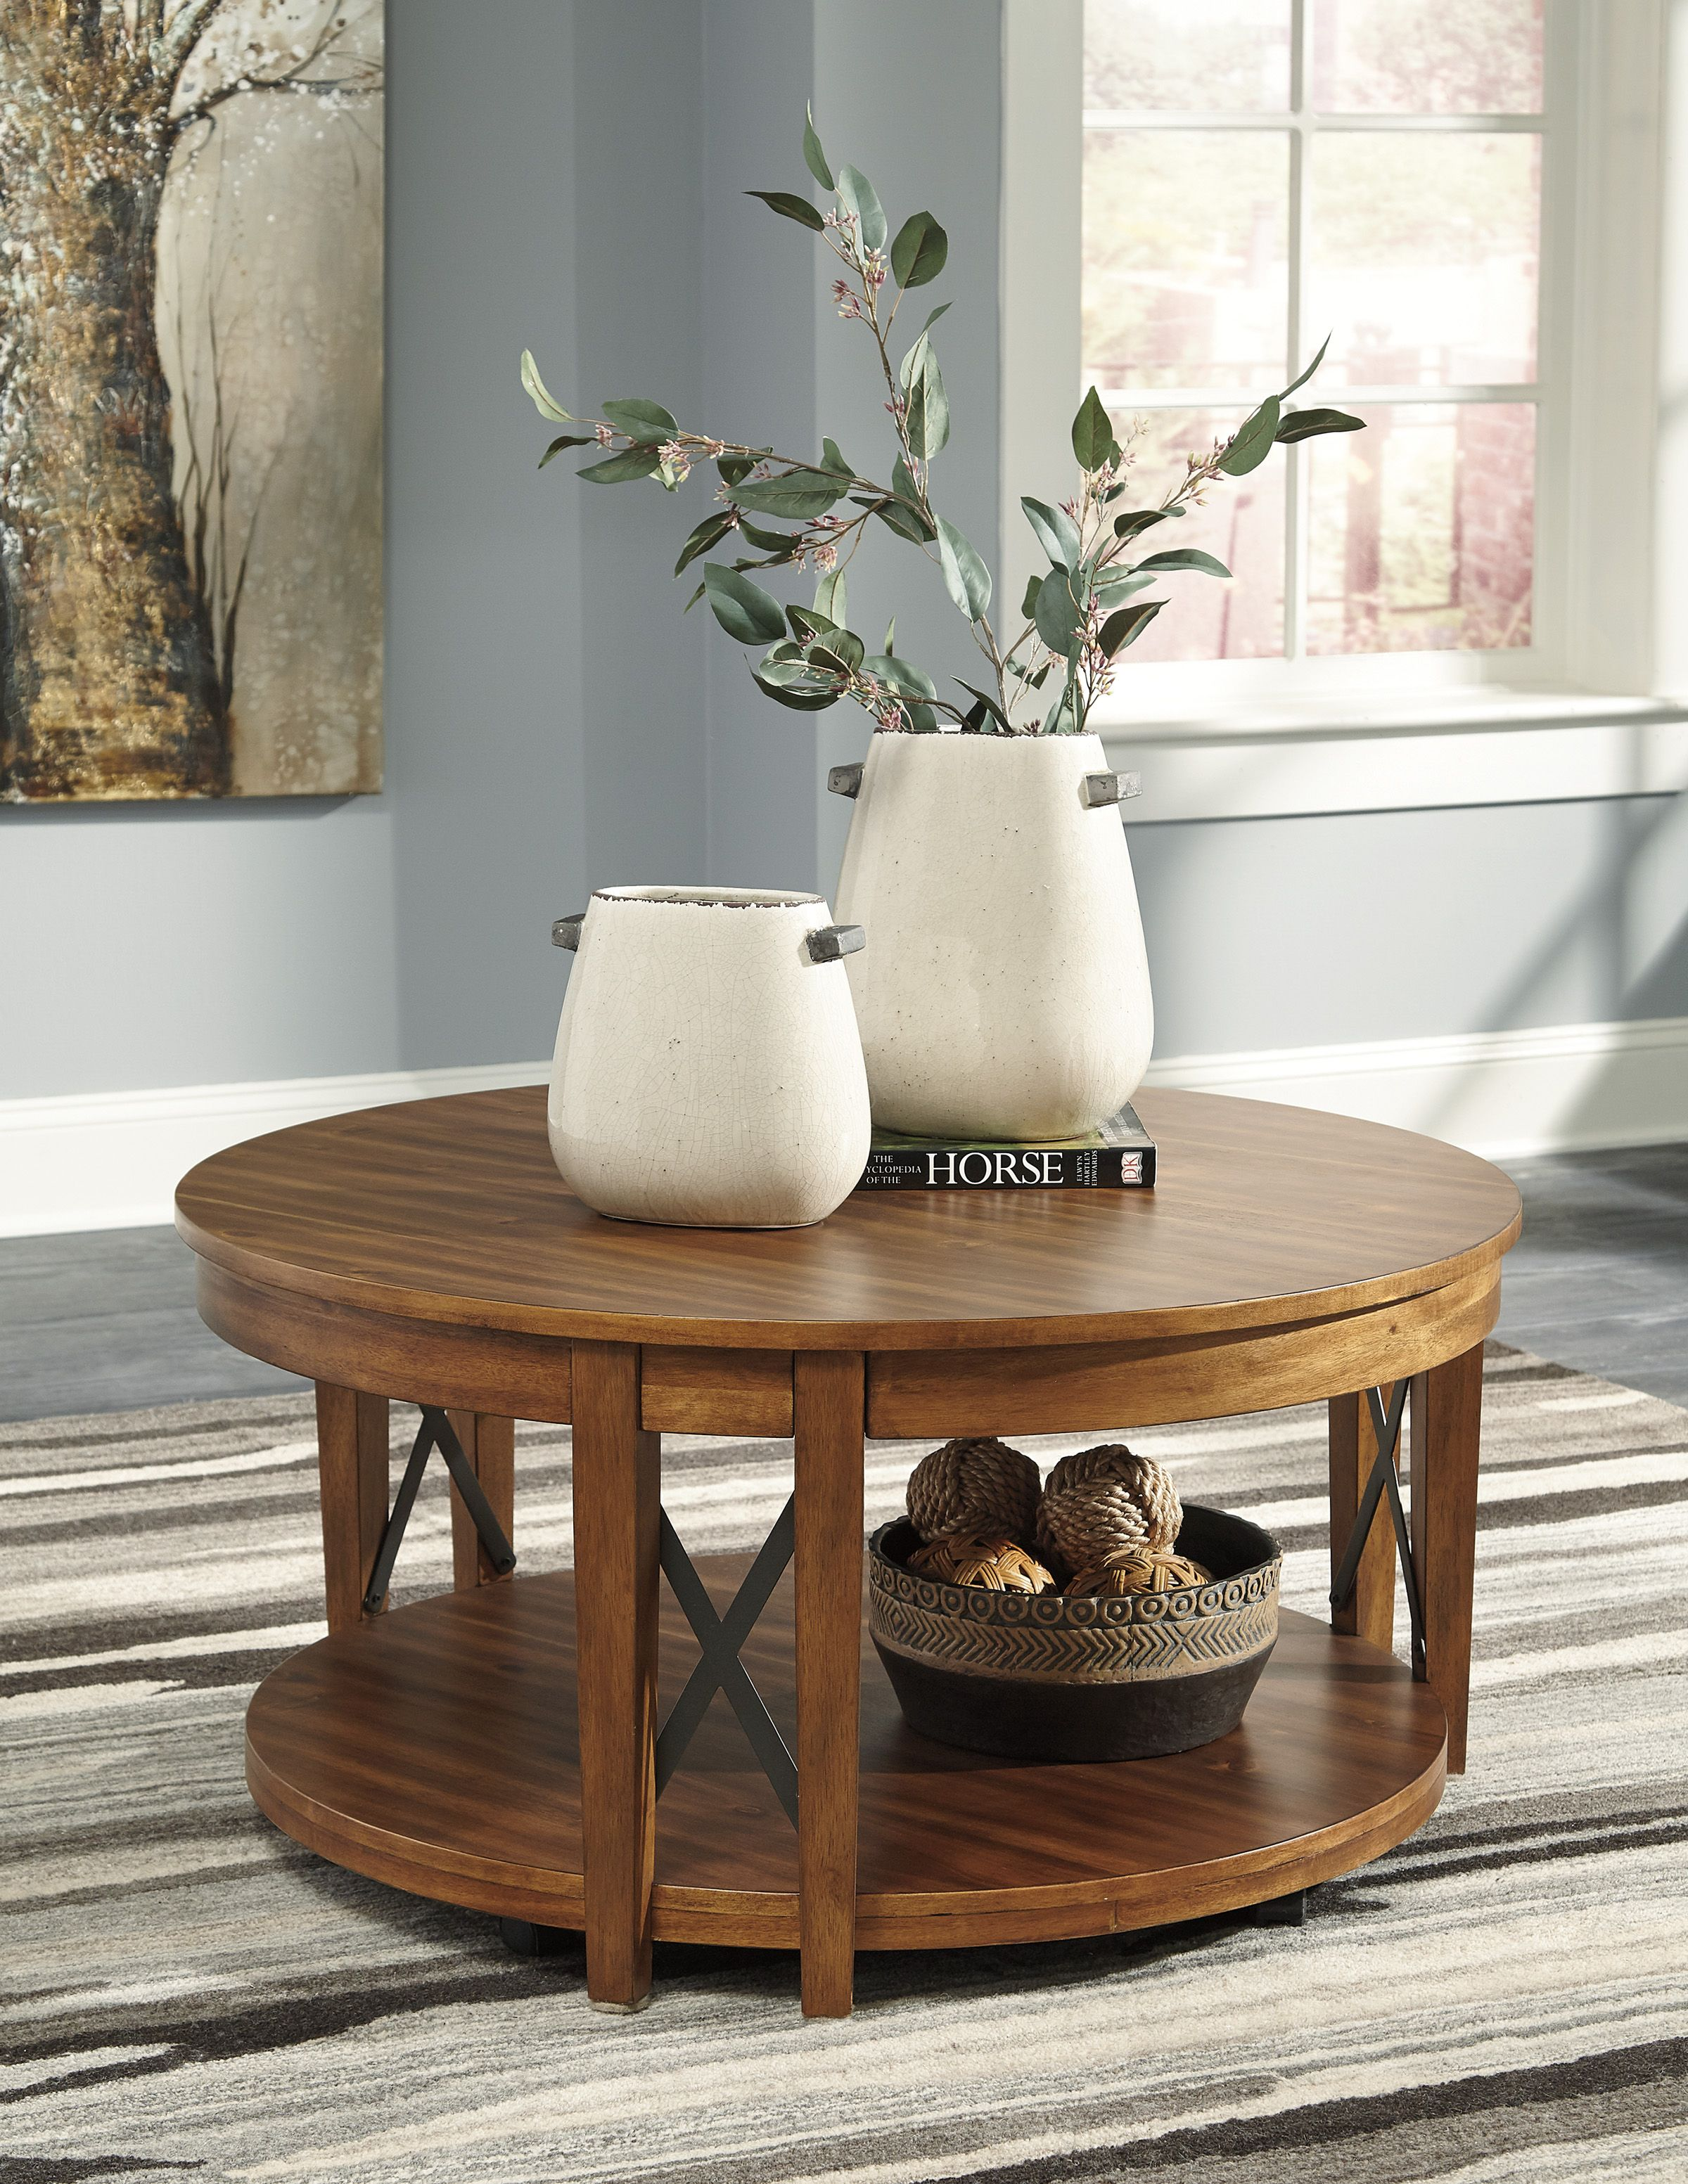 Emilander Round Cocktail Table Round Wood Coffee Table Coffee